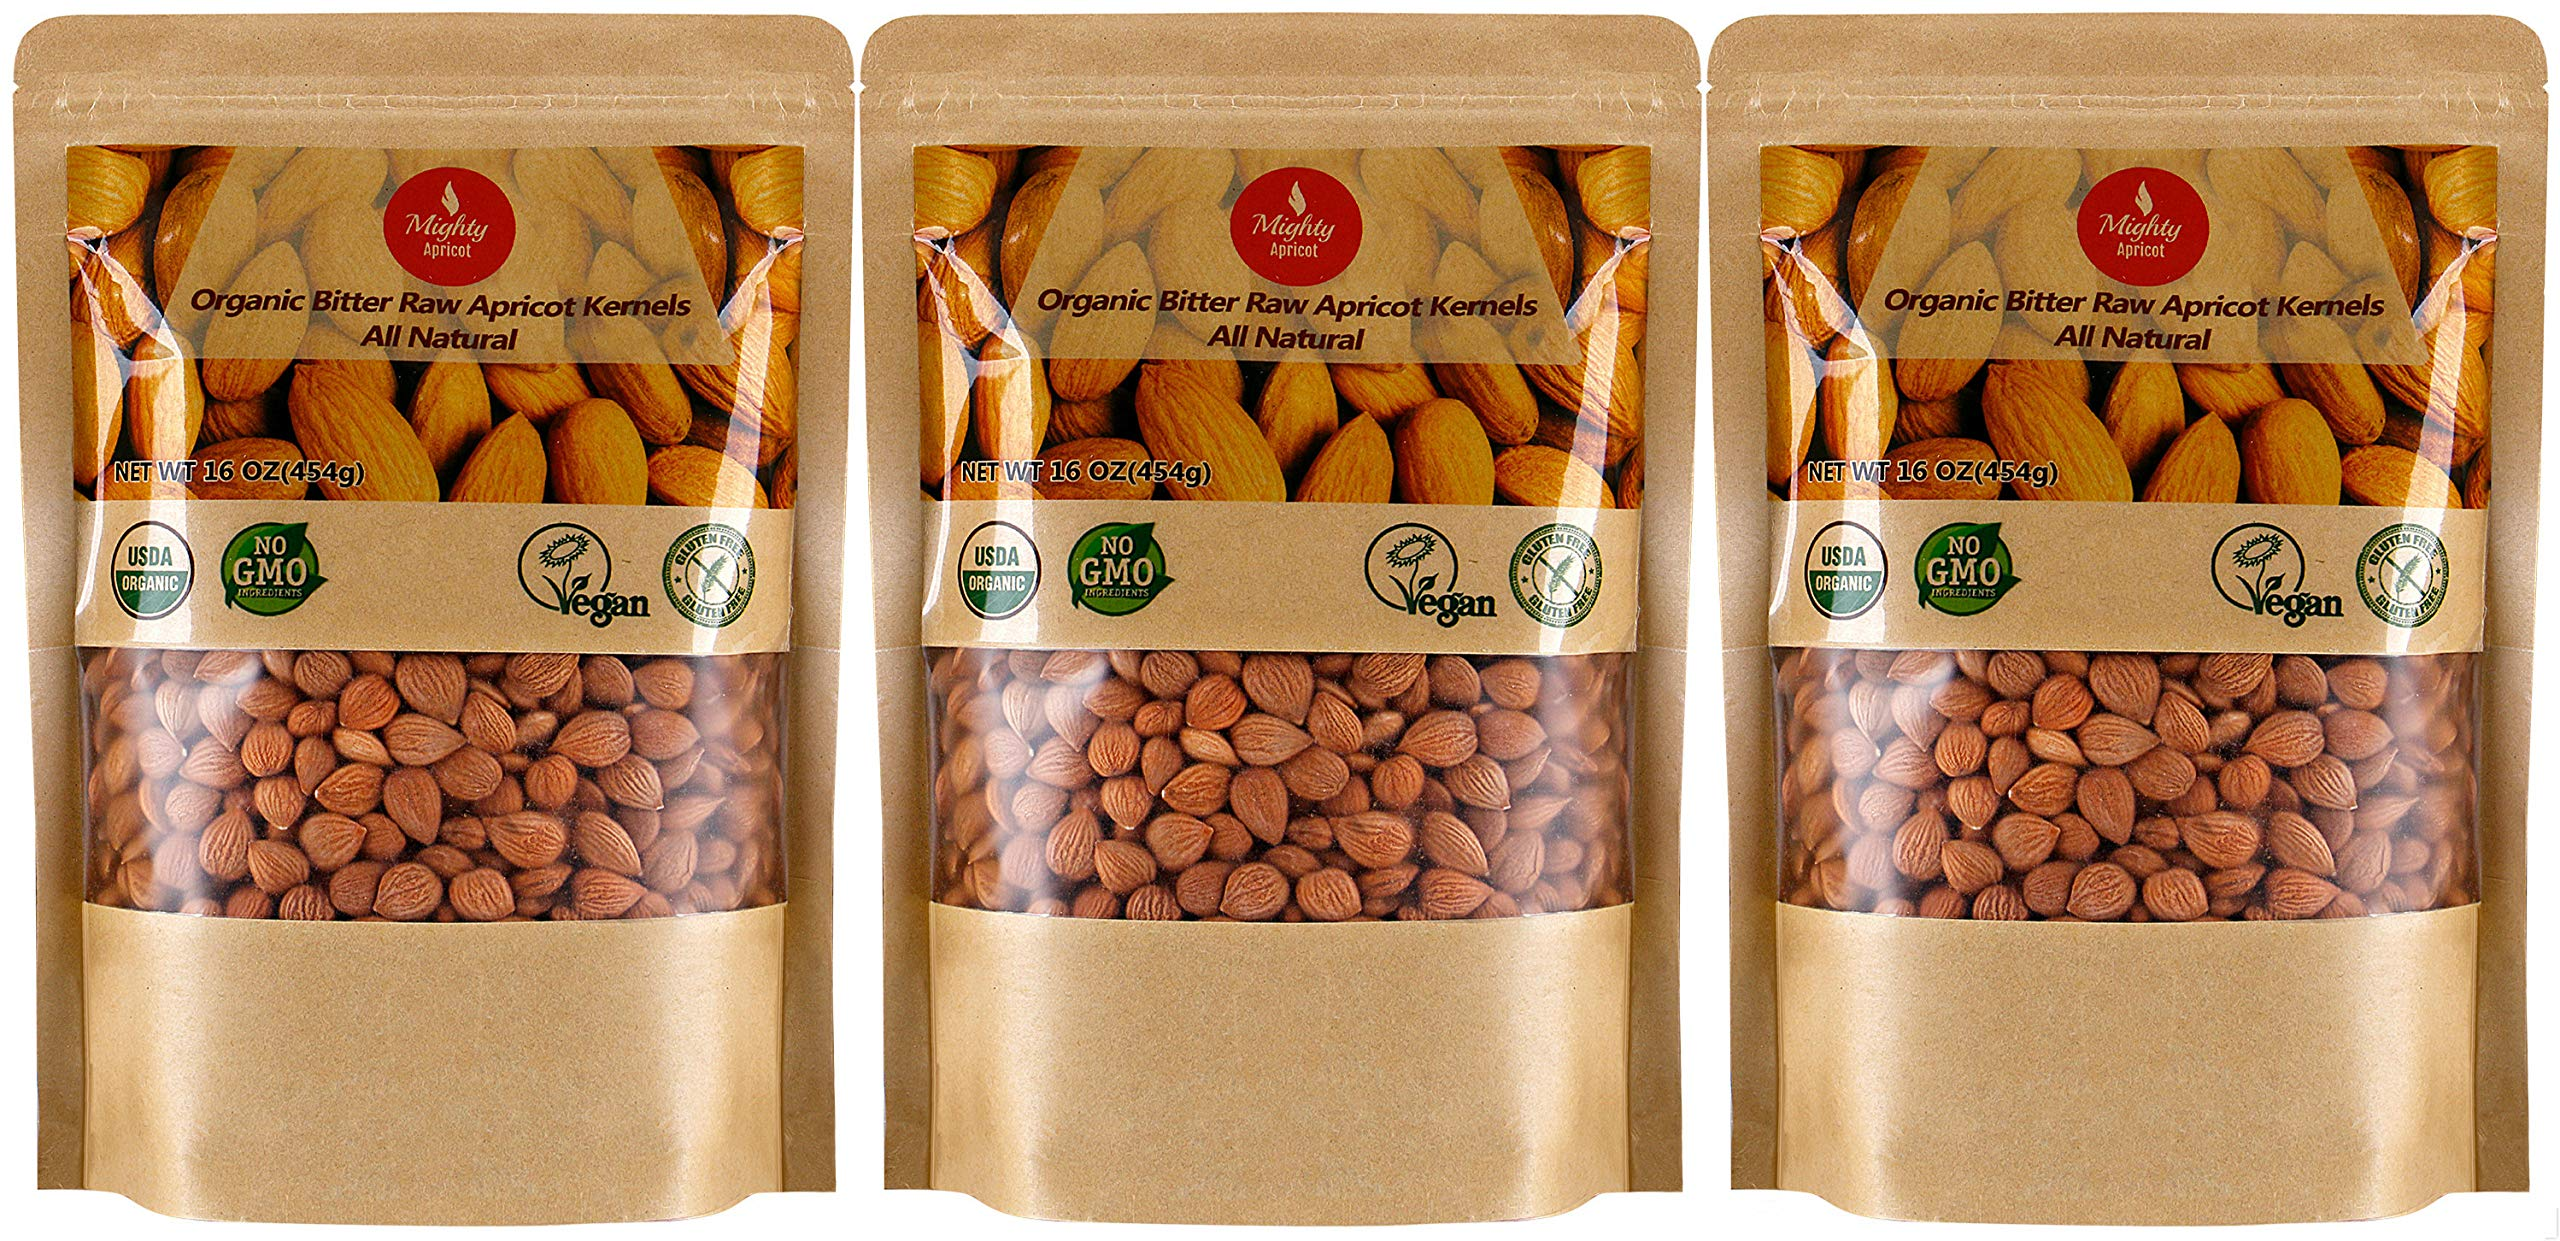 Mighty Apricot Bitter Apricot Kernels(1LB) 16oz (3 Pack), Natural Raw Bitter Apricot Seeds, Vegan, Non-GMO, Gluten Free, Great source of Vitamin B17 and B15